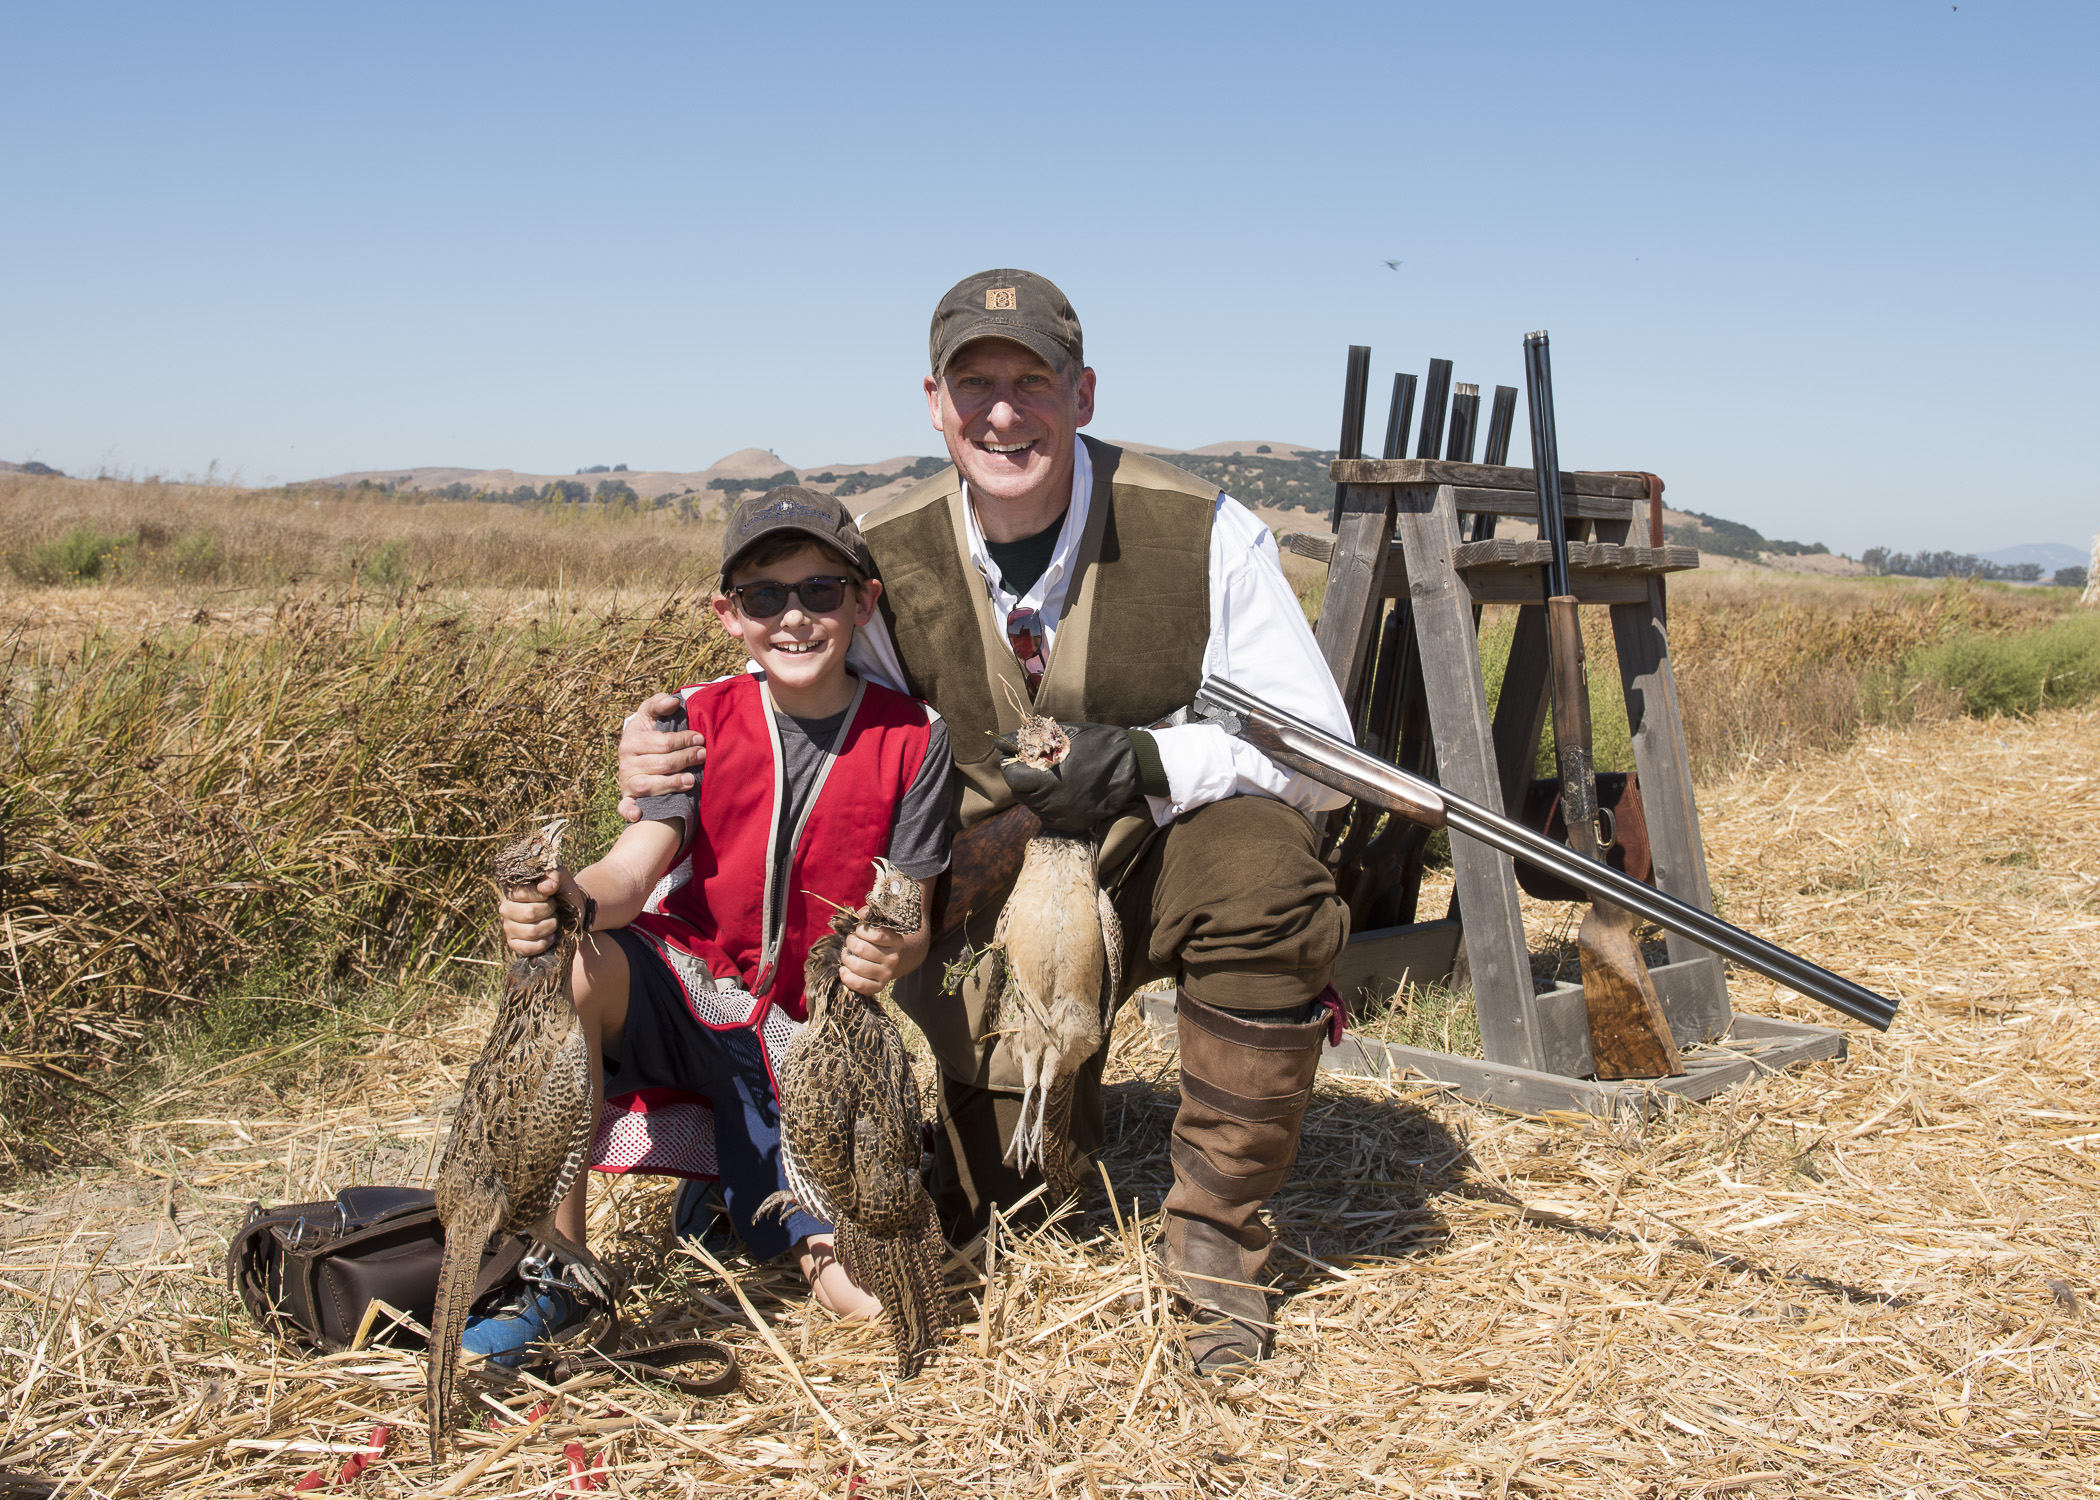 Youth Instruction - We are passionate about making shooting accessible to all, and encourage members and their families to safely learn to shoot. Our instructors may be scheduled for private instruction or in groups allowing children to meet new people and learn the sport.